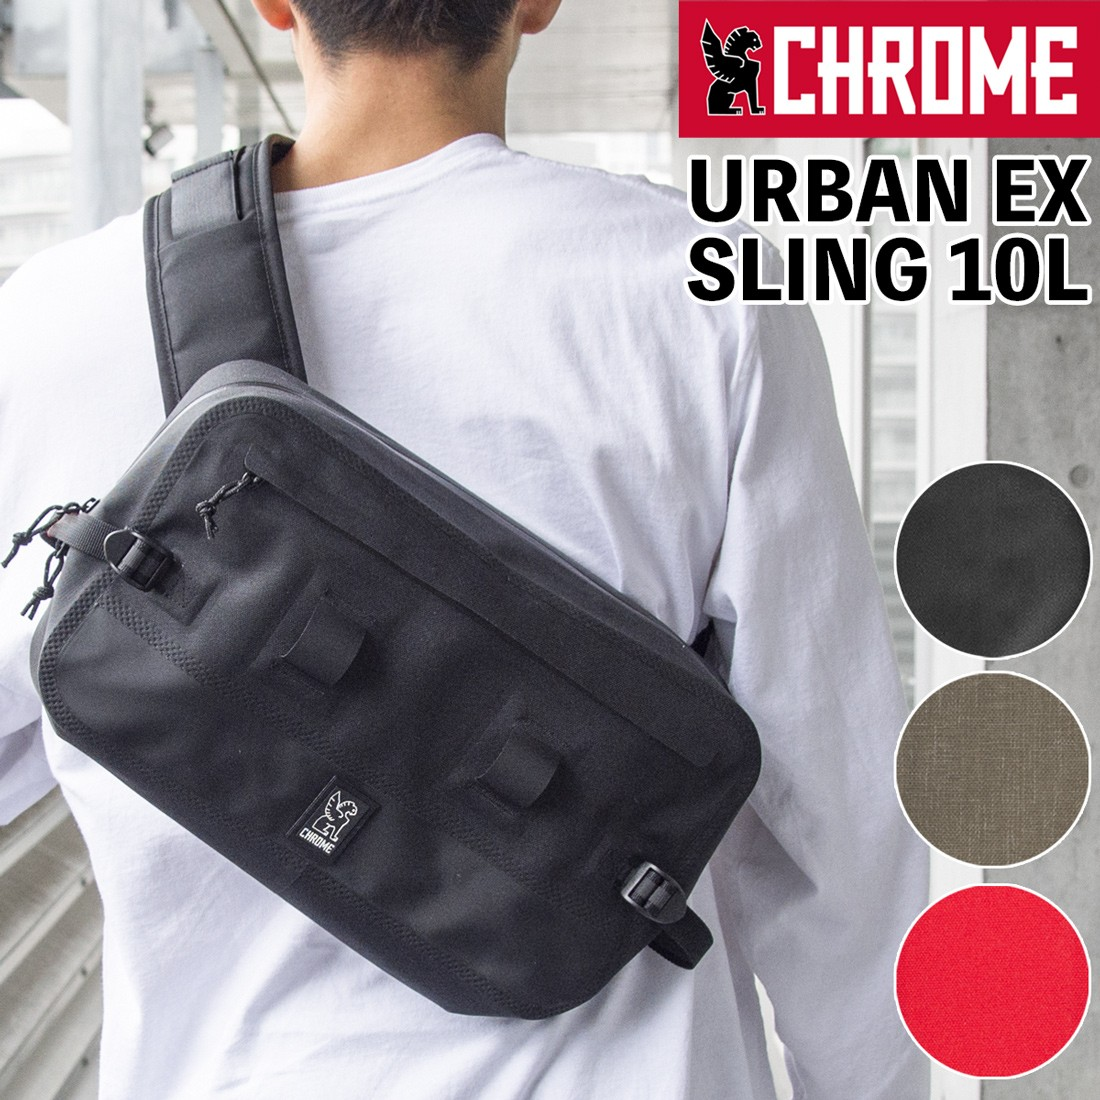 CHROME URBAN EX SLING